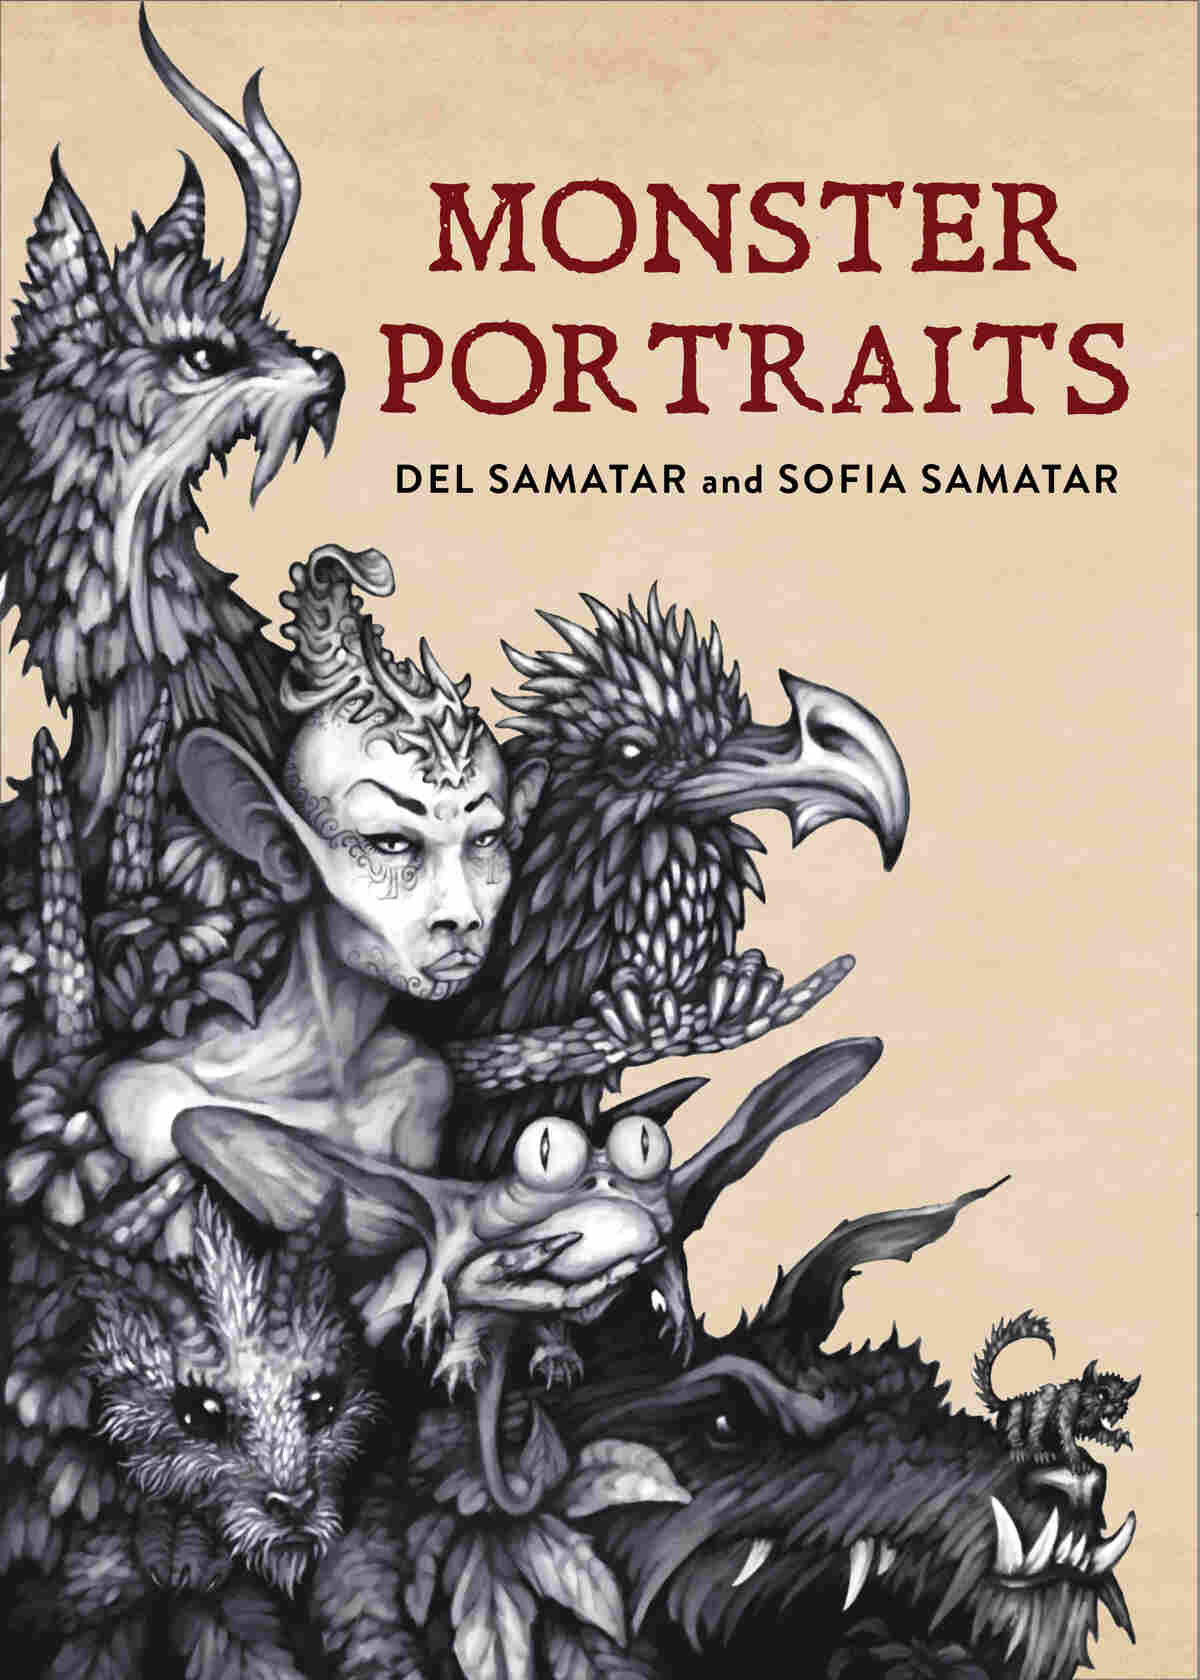 Monster Portraits, by Sofia Samatar and Del Samatar